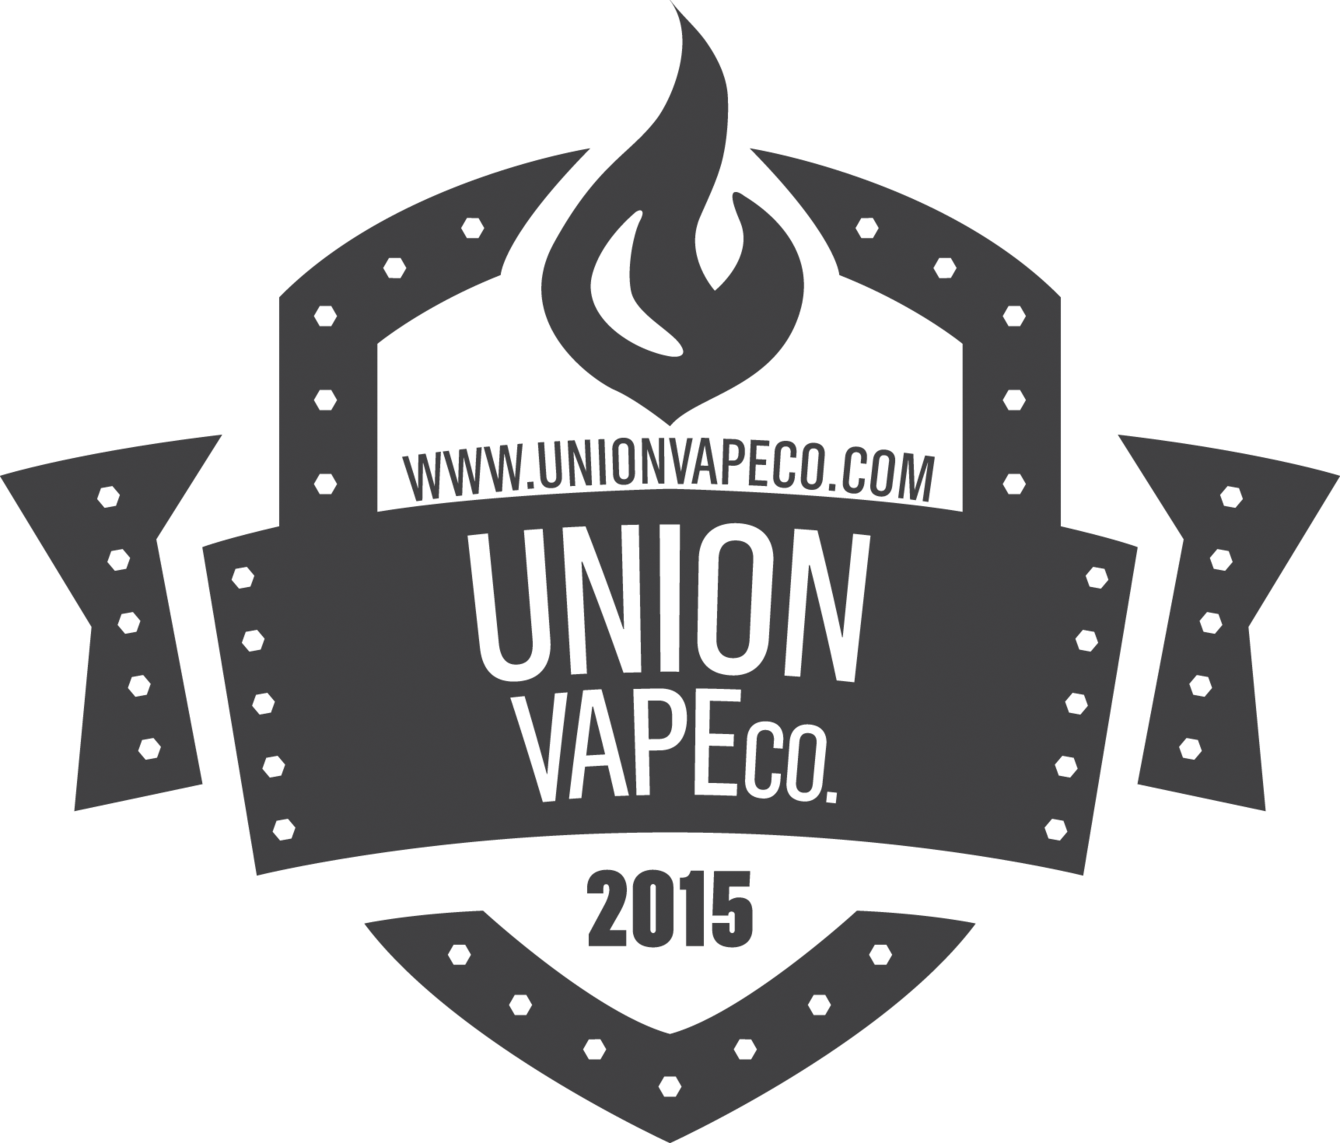 Union Vape Co